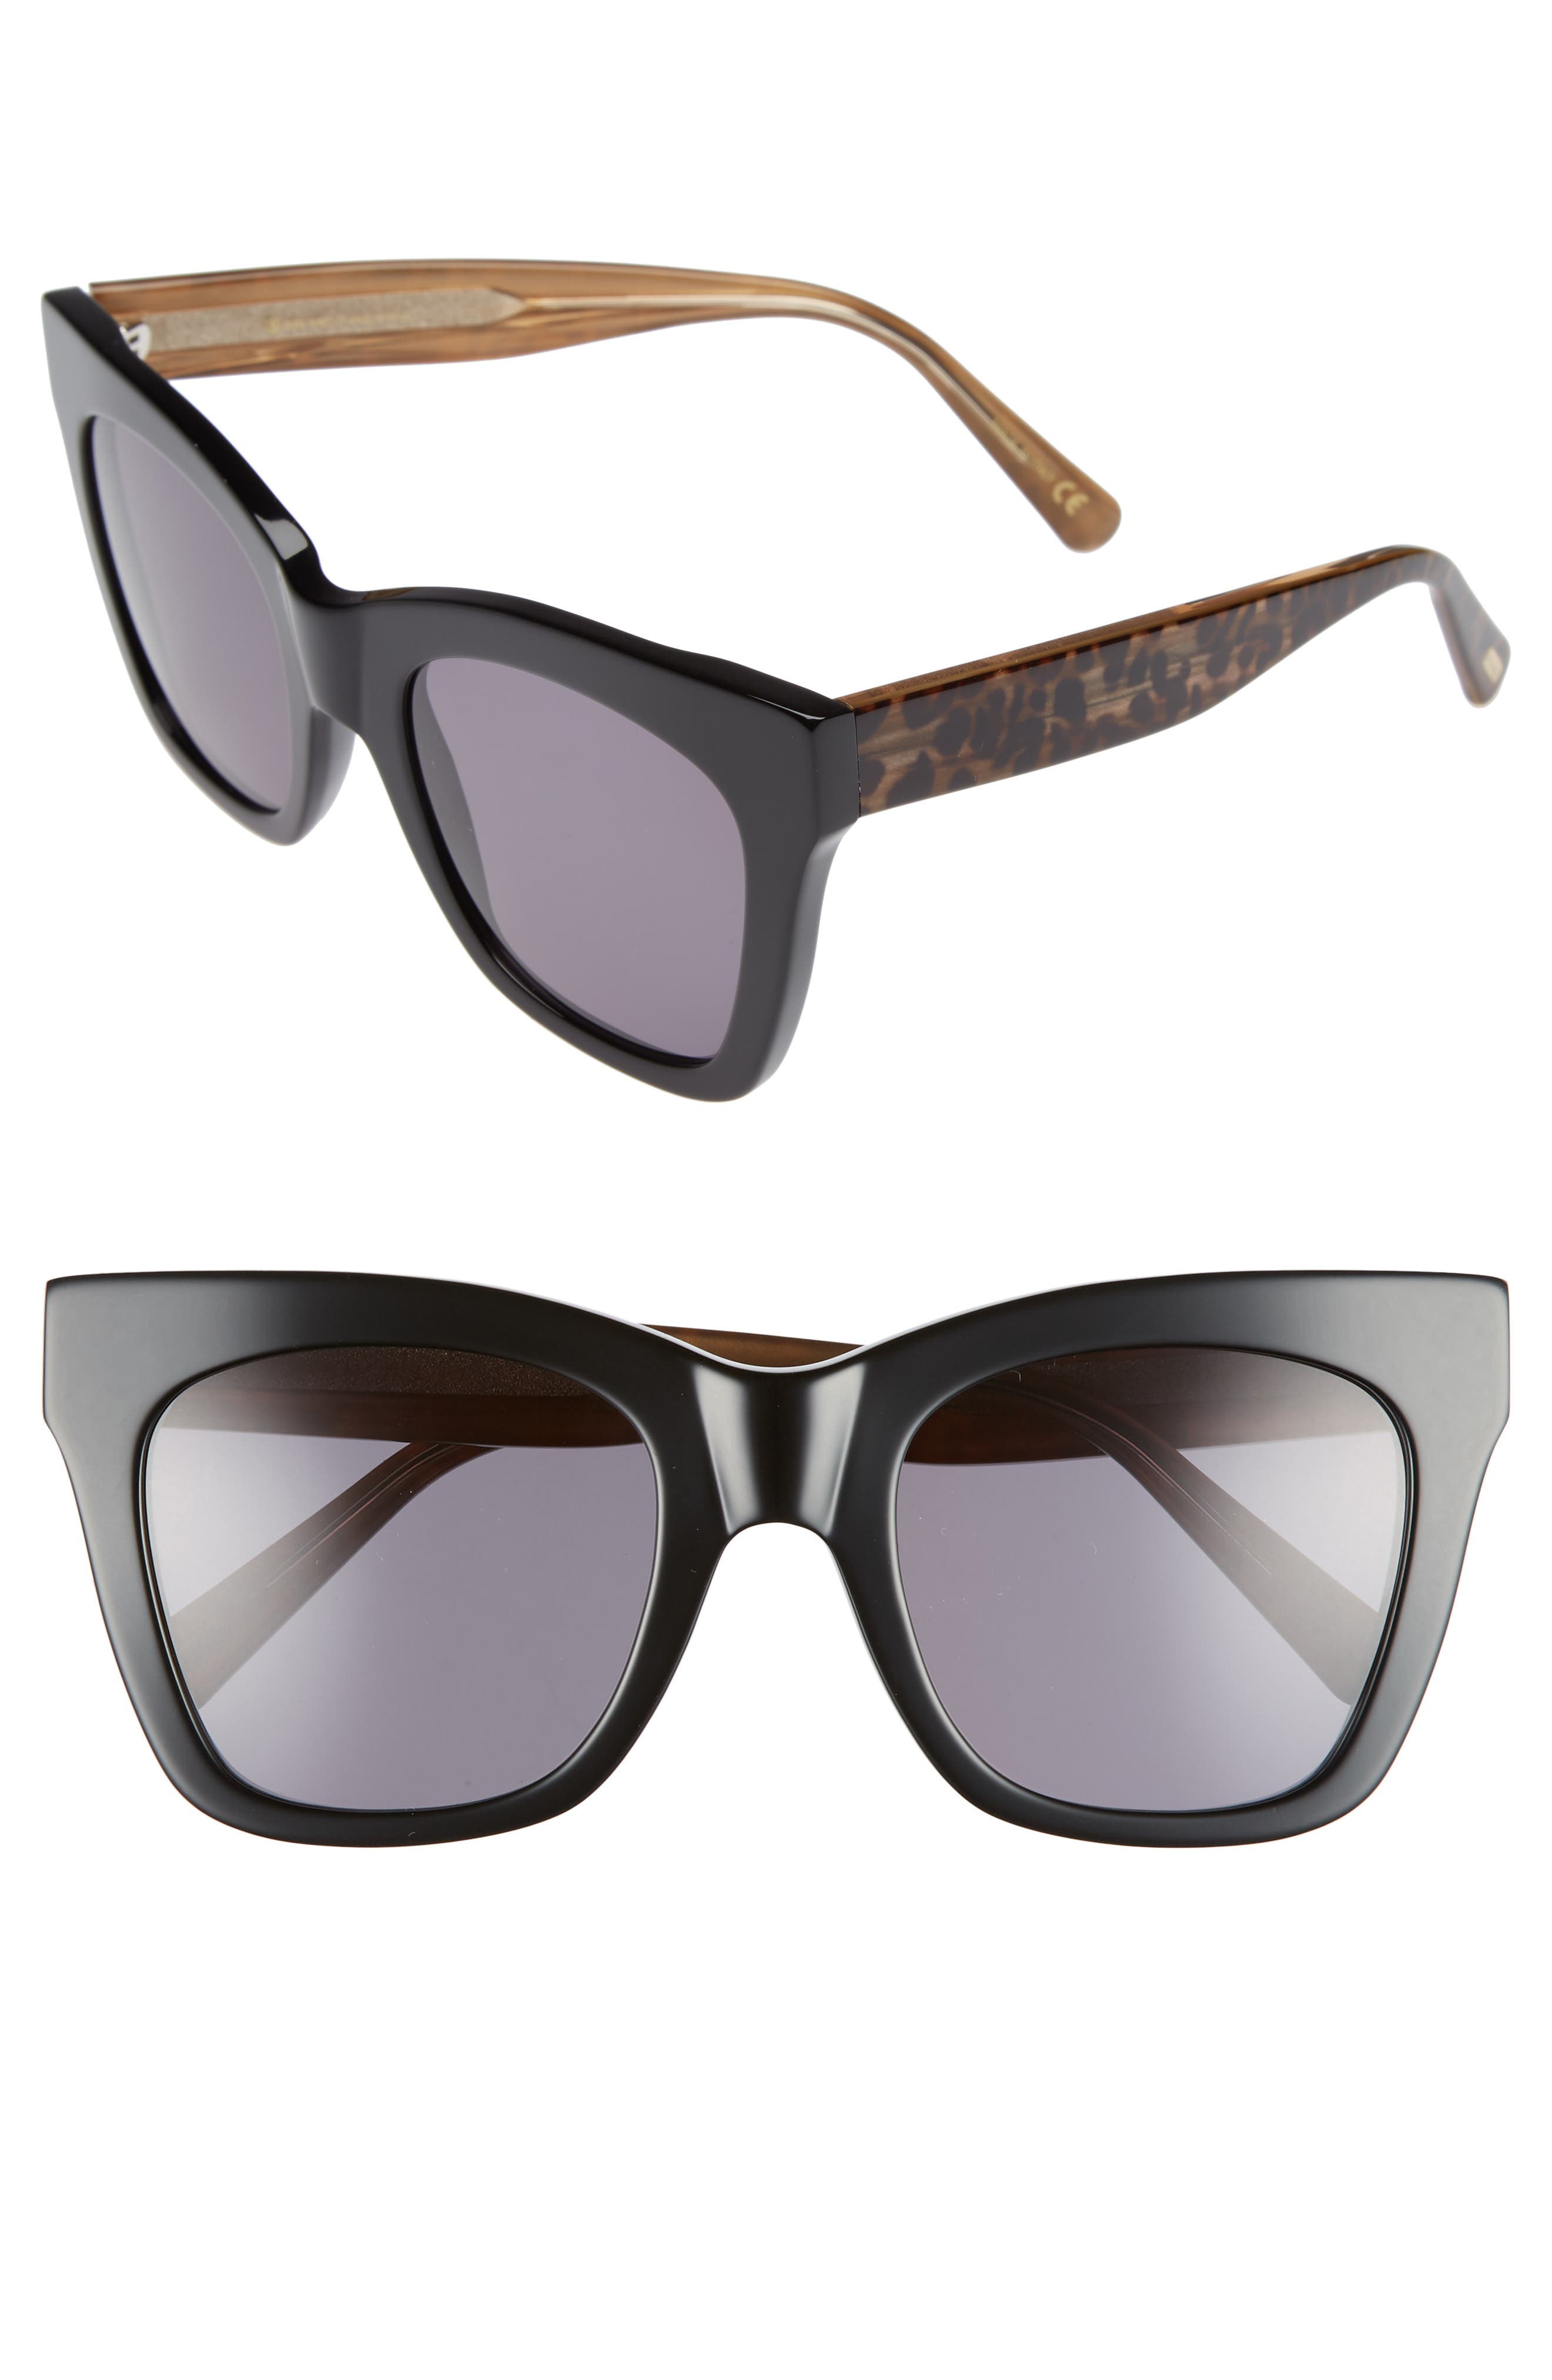 DBLANC D'BLANC Beach Vida 52mm Sunglasses, Main, color, BLACK CHEETAH/ GREY